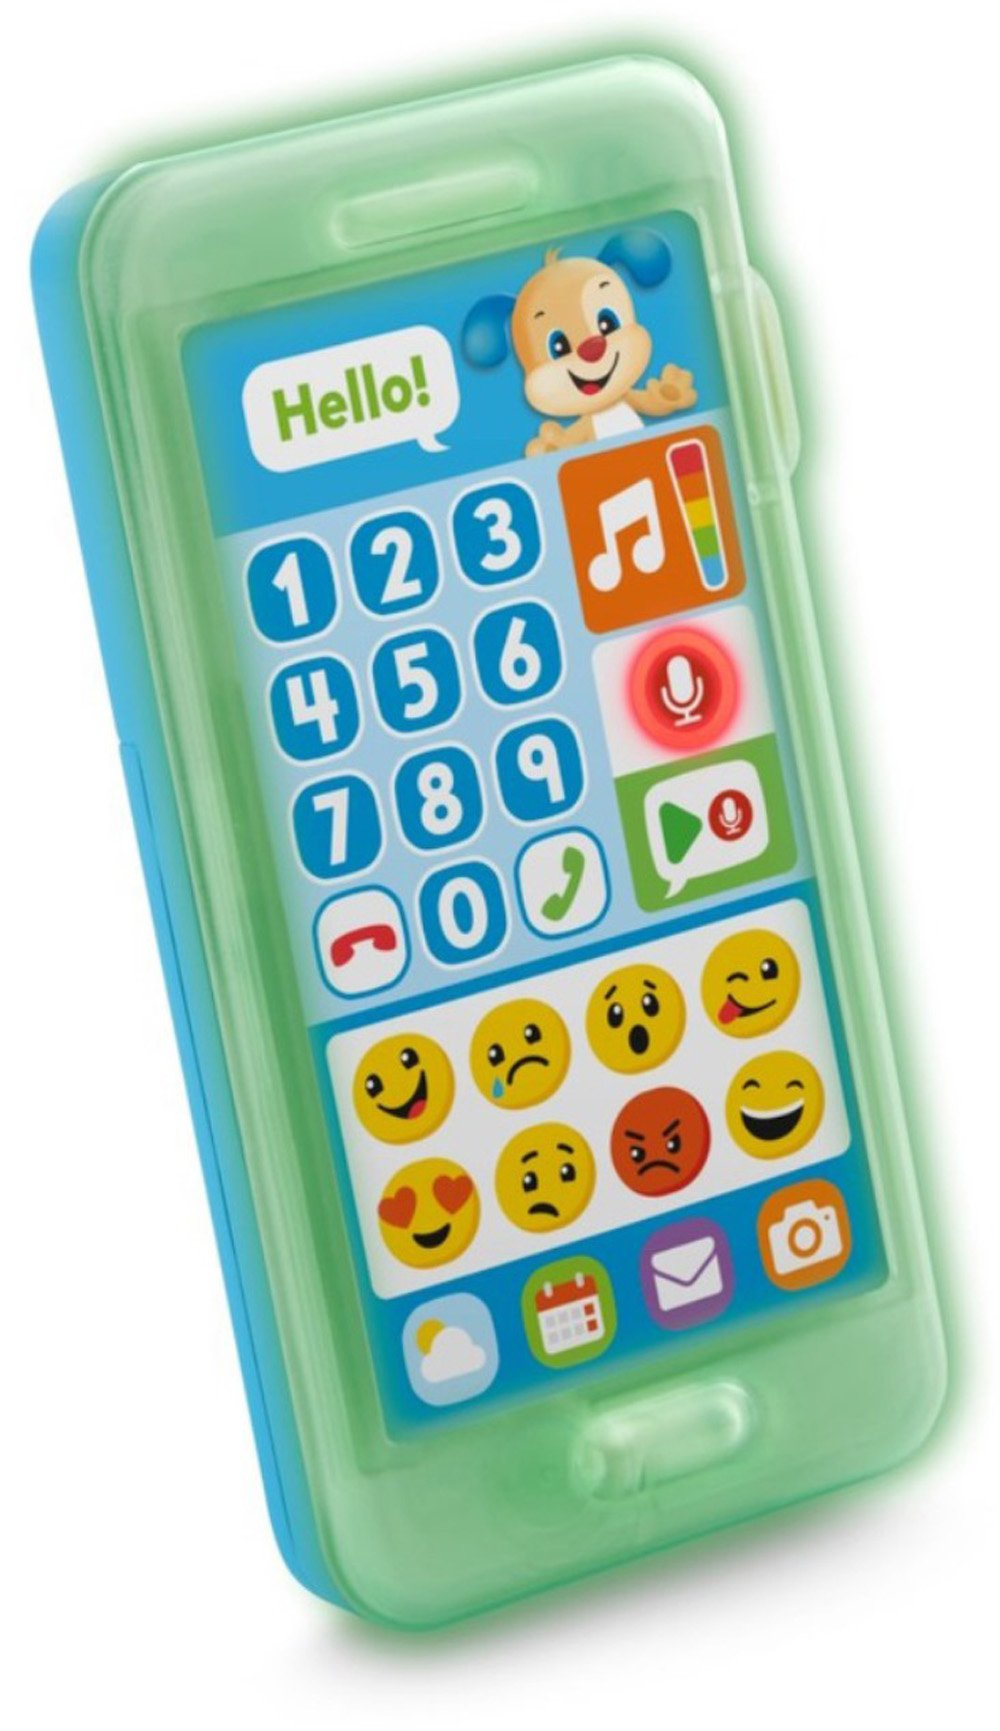 Fisher-Price Laugh & Learn Leave A Message Smart Phone, Puppy by Fisher-Price (Image #9)